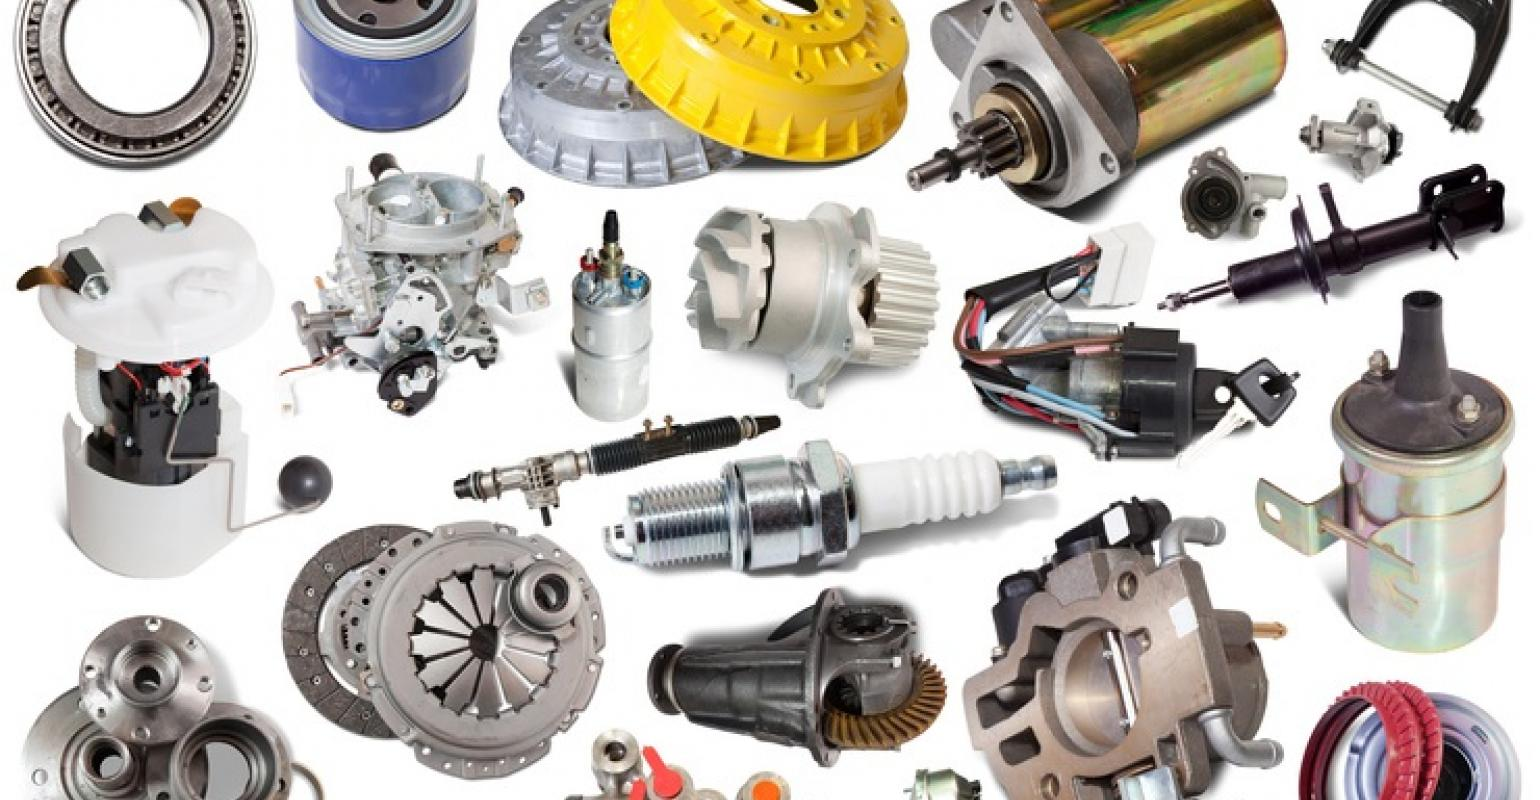 How to save cash on Auto Parts